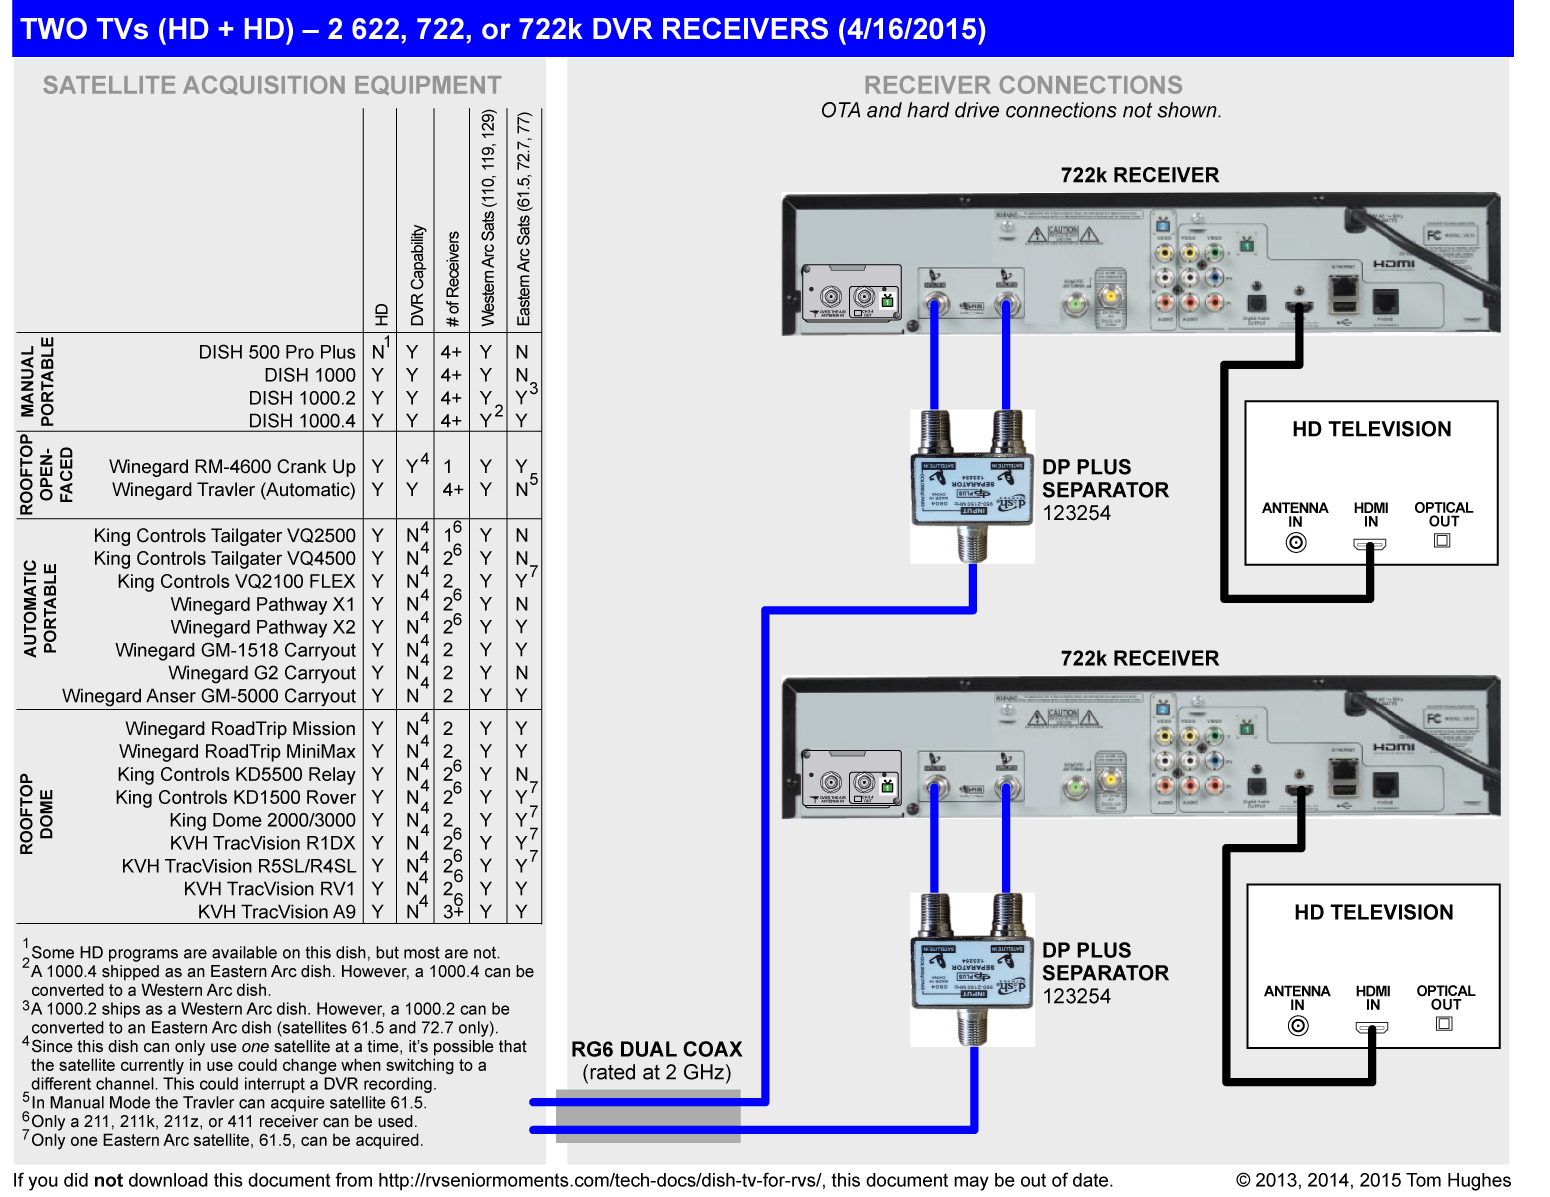 206_dish_twotvs_622_722_722k_hdhd720dpi wiring diagram dish network 722k readingrat net dish network wiring diagrams dual tuner at bayanpartner.co